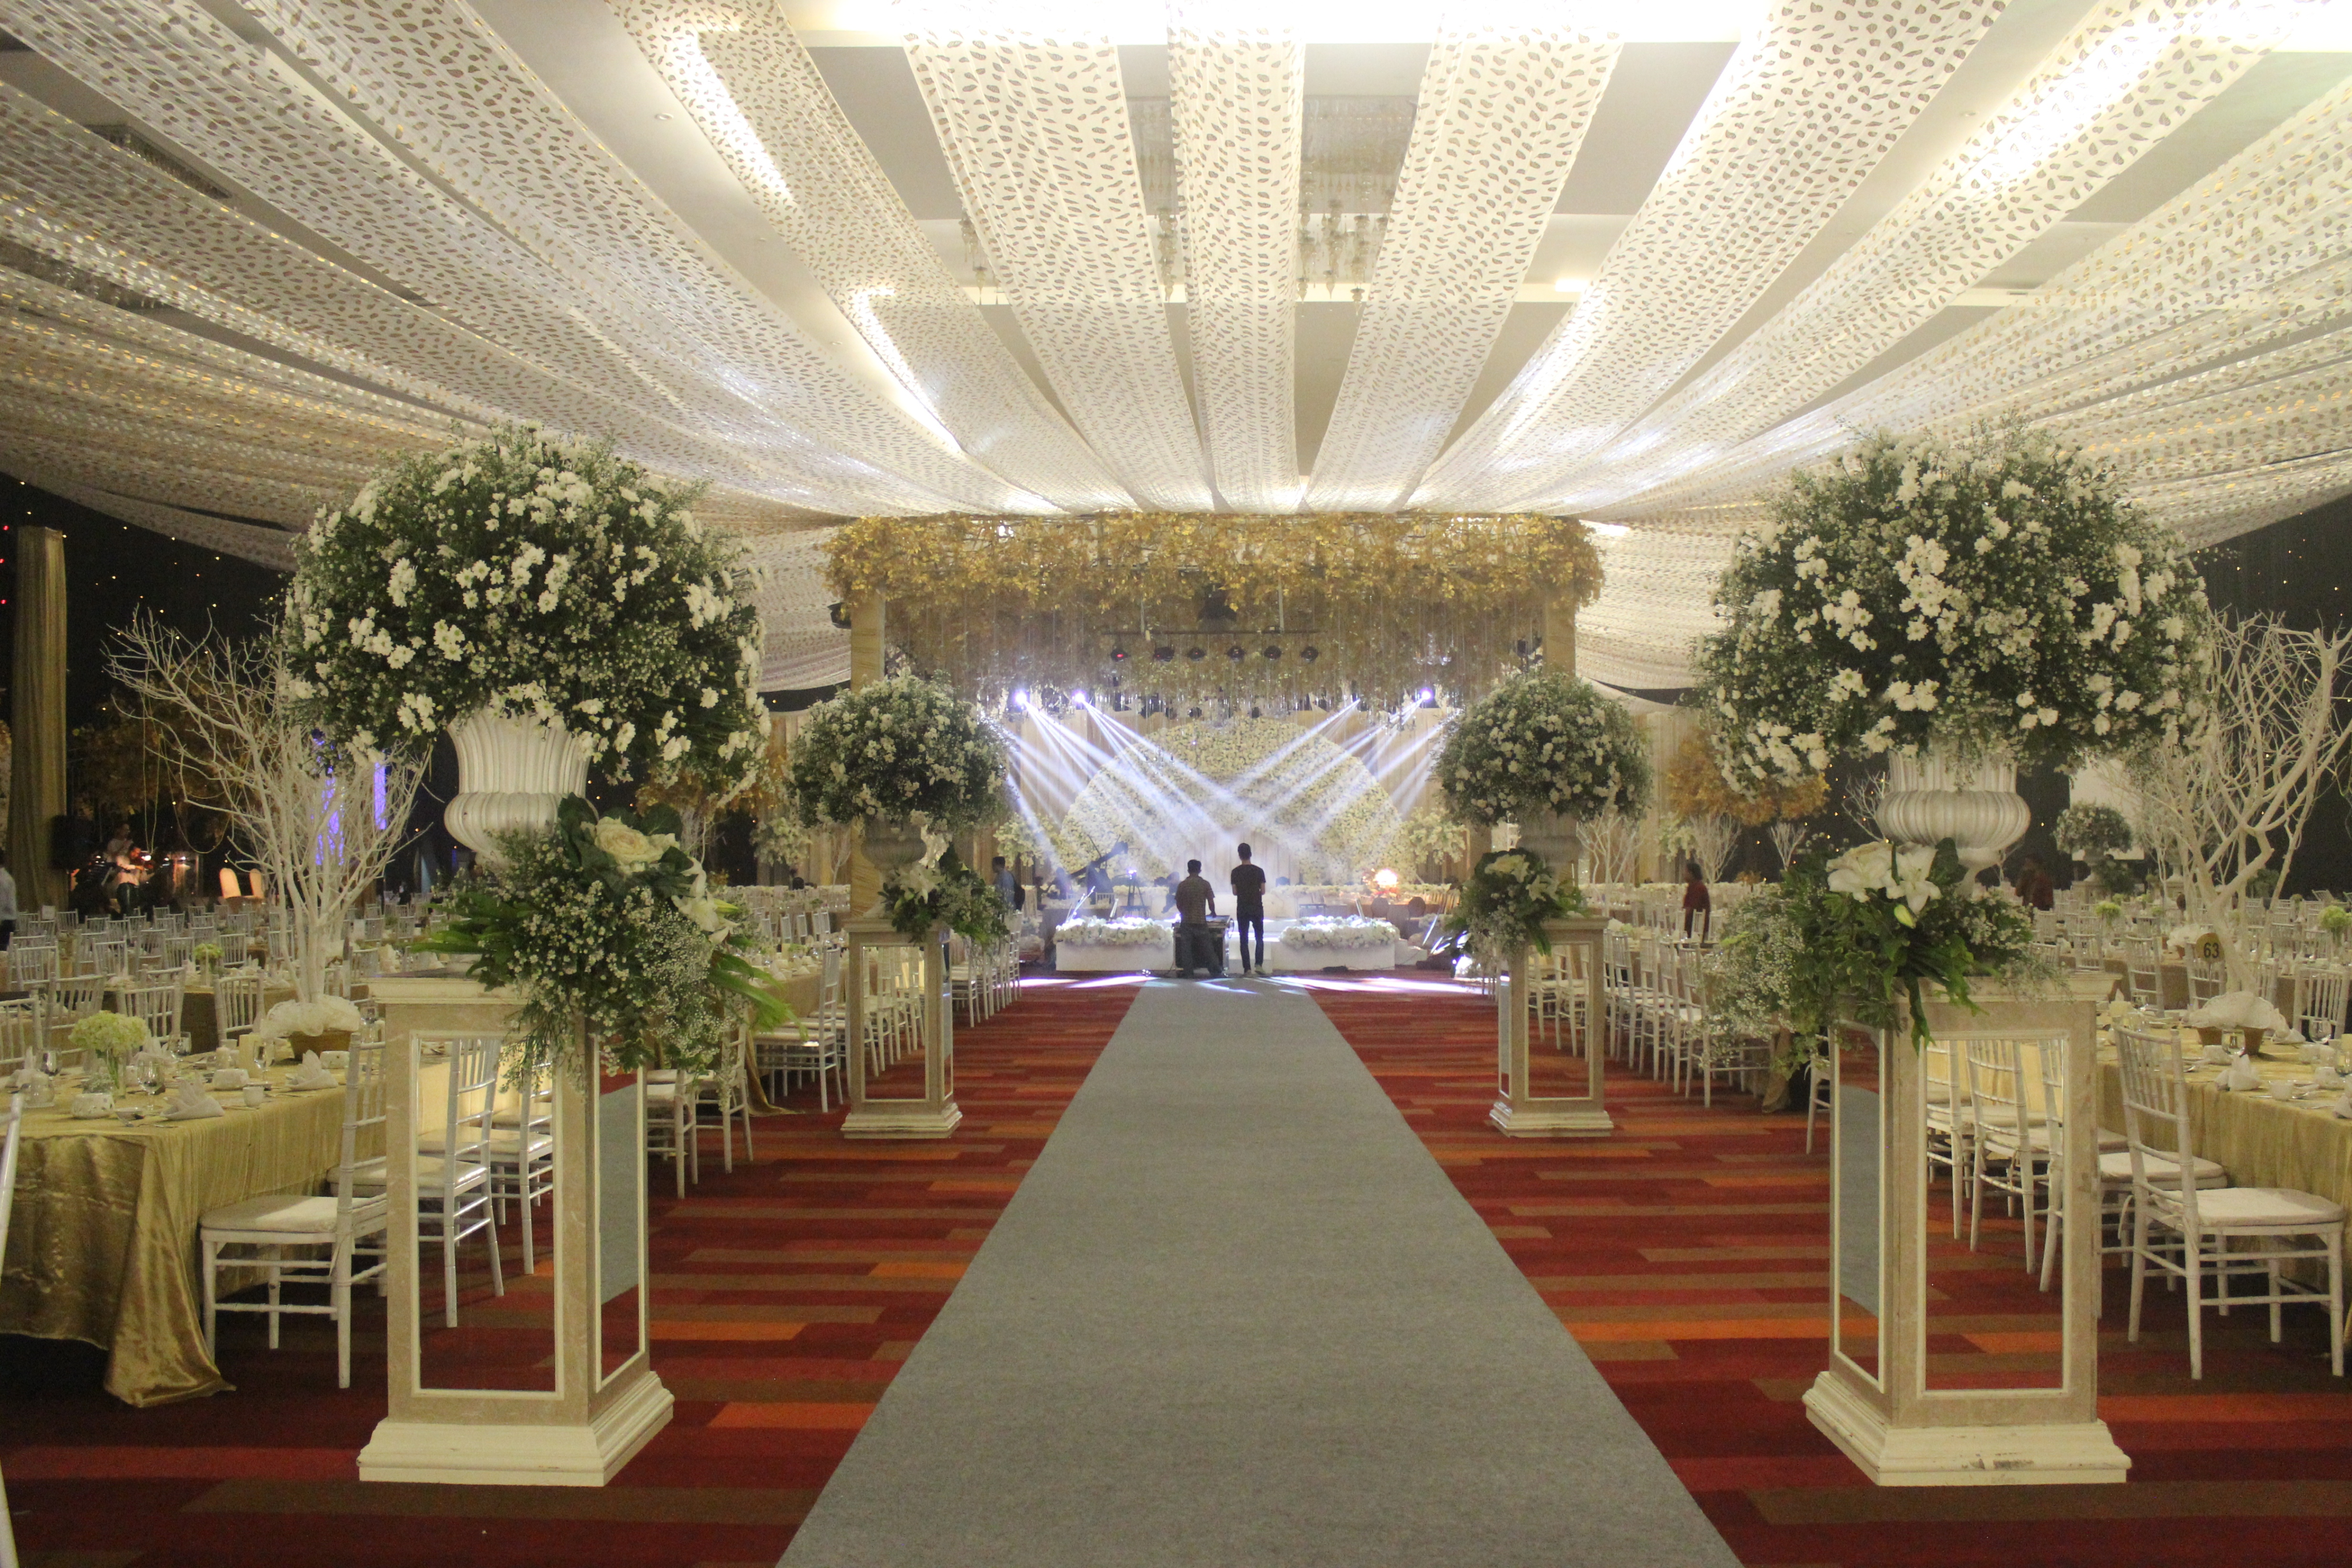 Wedding party 24 january 2016 by dyandra convention center surabaya wedding party 24 january 2016 by dyandra convention center surabaya bridestory junglespirit Image collections